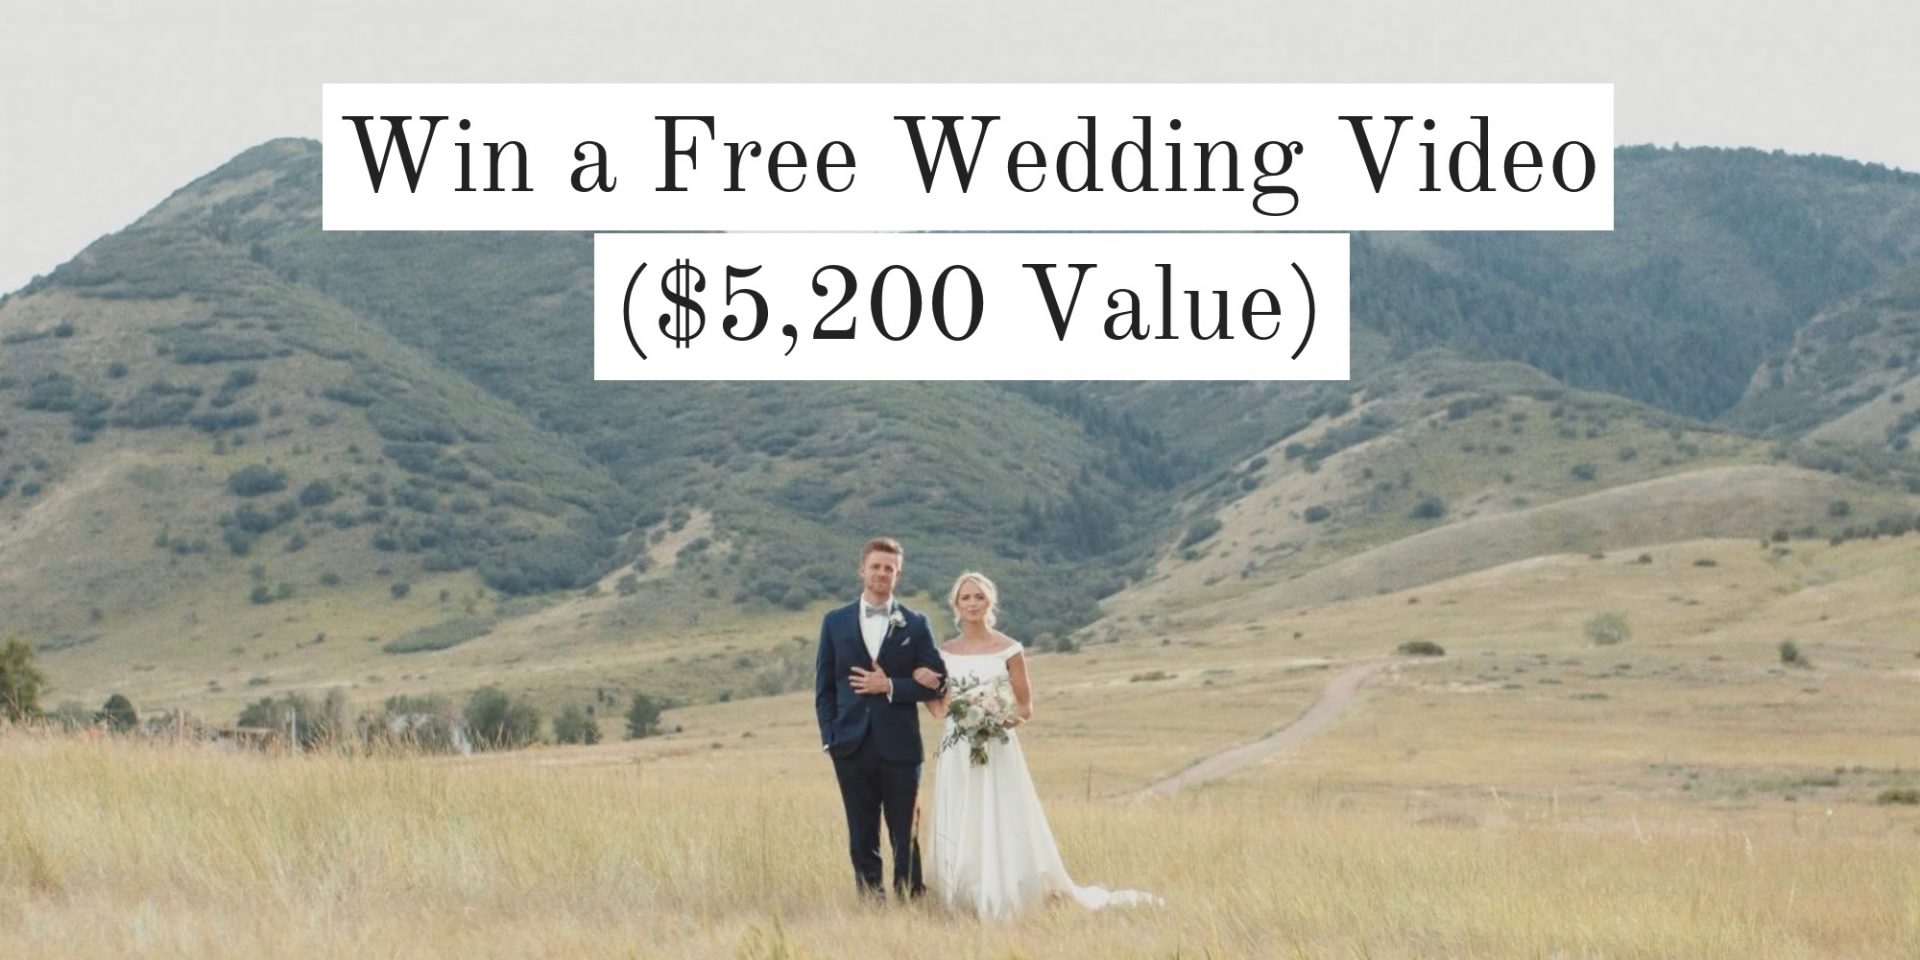 Enter to Win a FREE Wedding Video ($5,200 Value!)